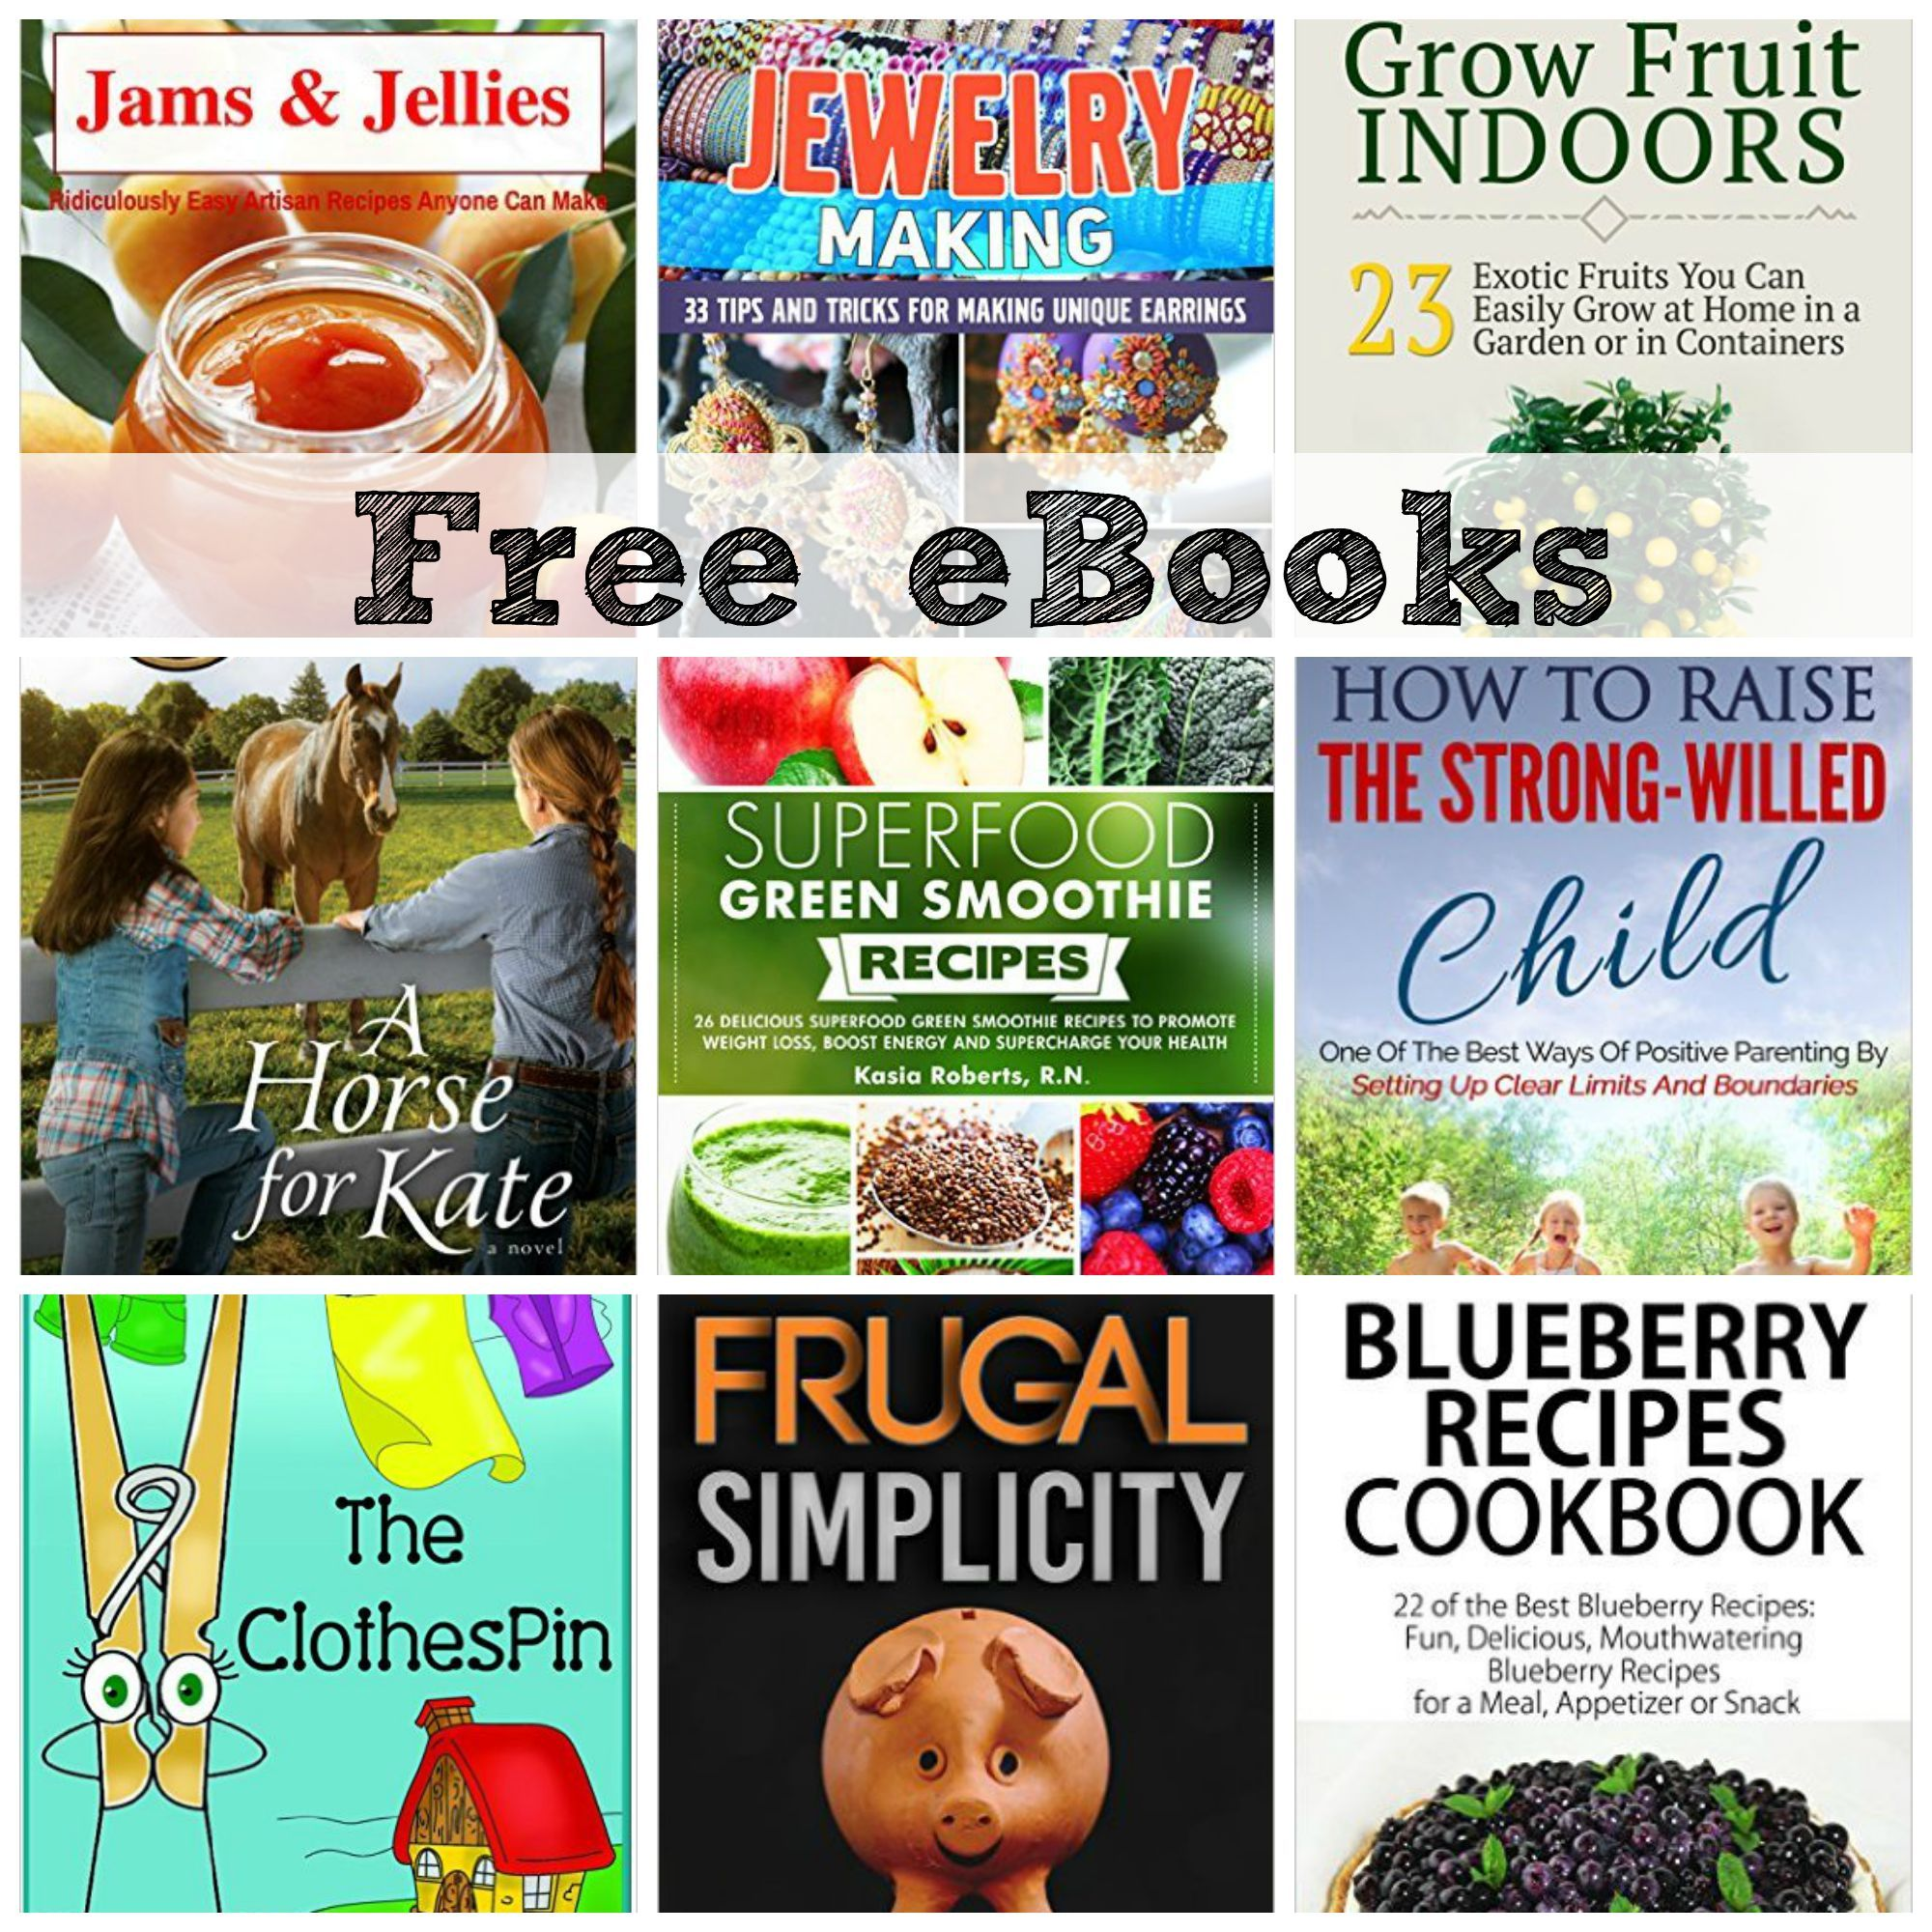 Free ebooks superfood green smoothie recipes how to